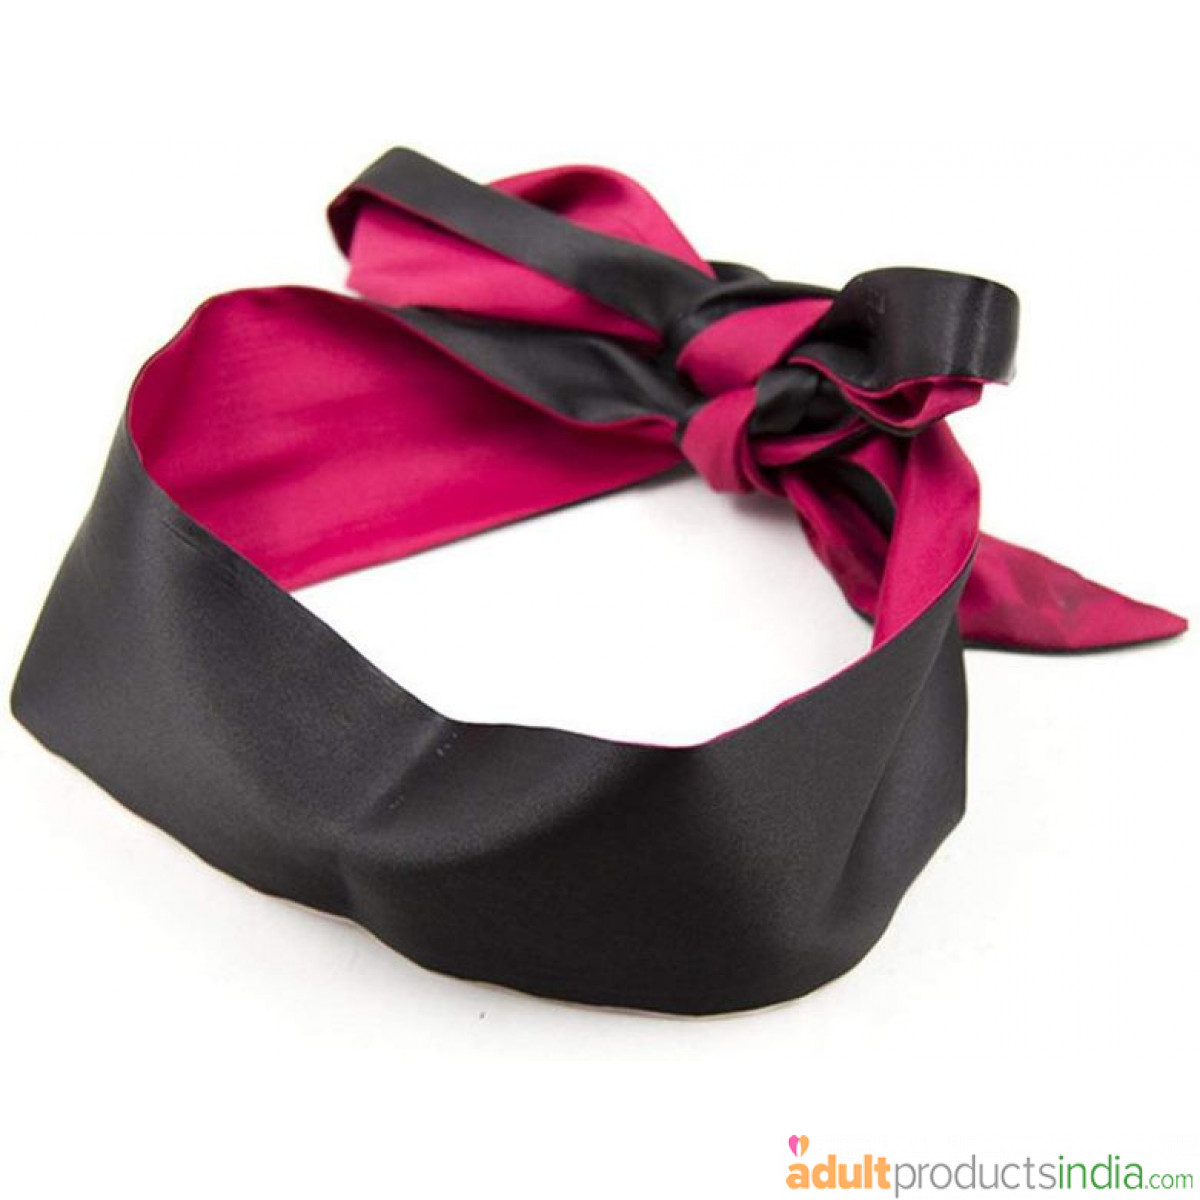 Silk Blind Fold - Black And Red